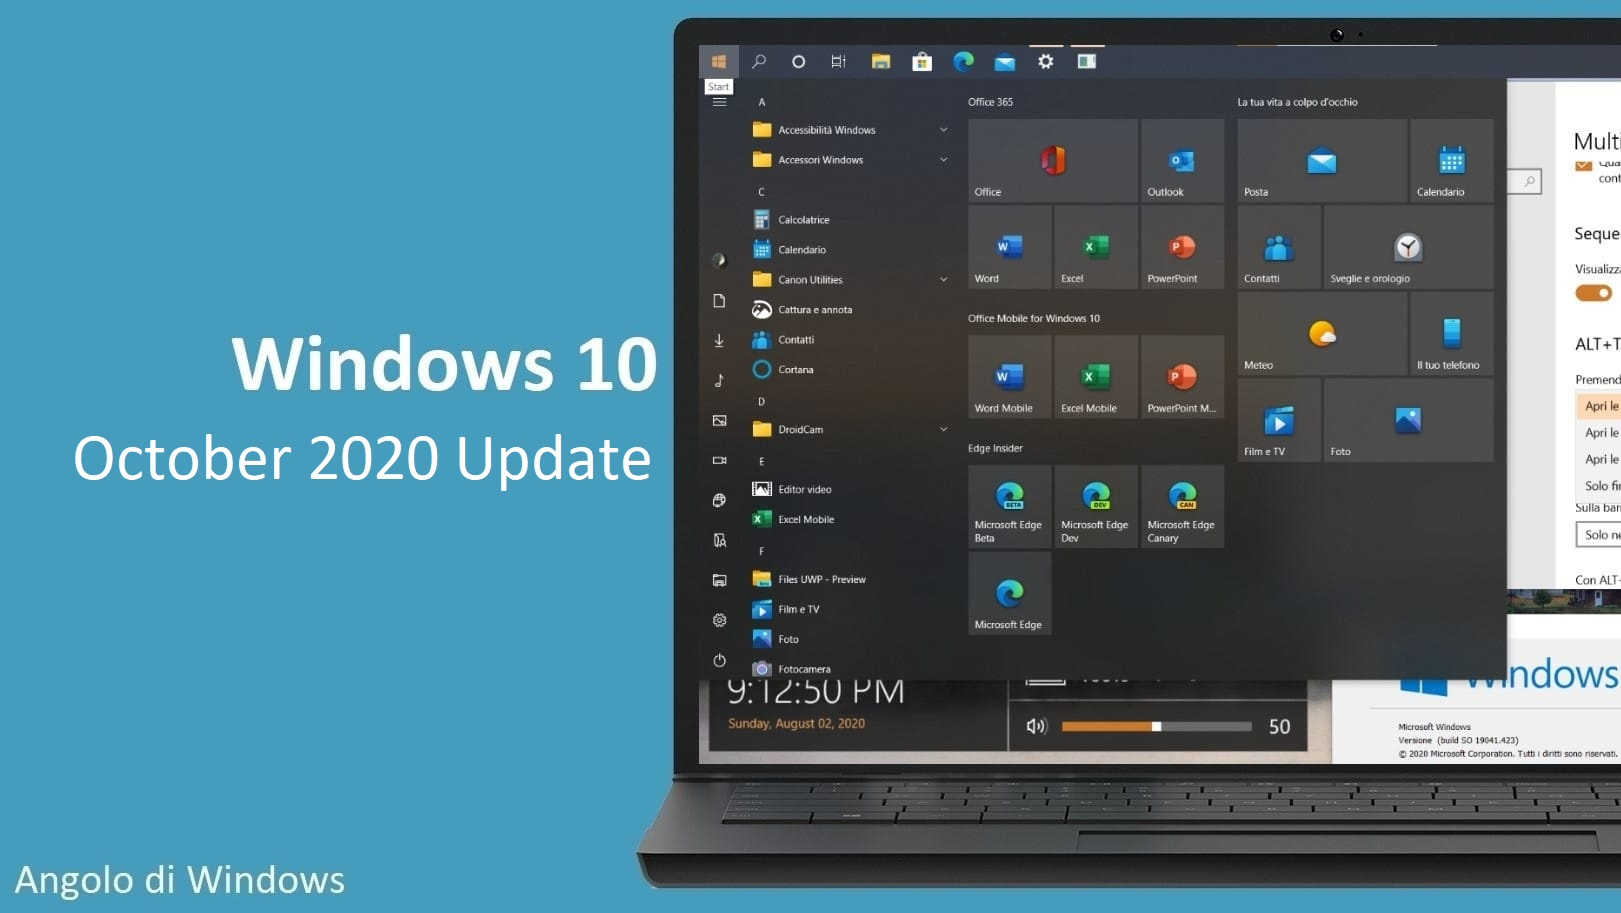 Come aggiornare subito a Windows 10 October 2020 Update